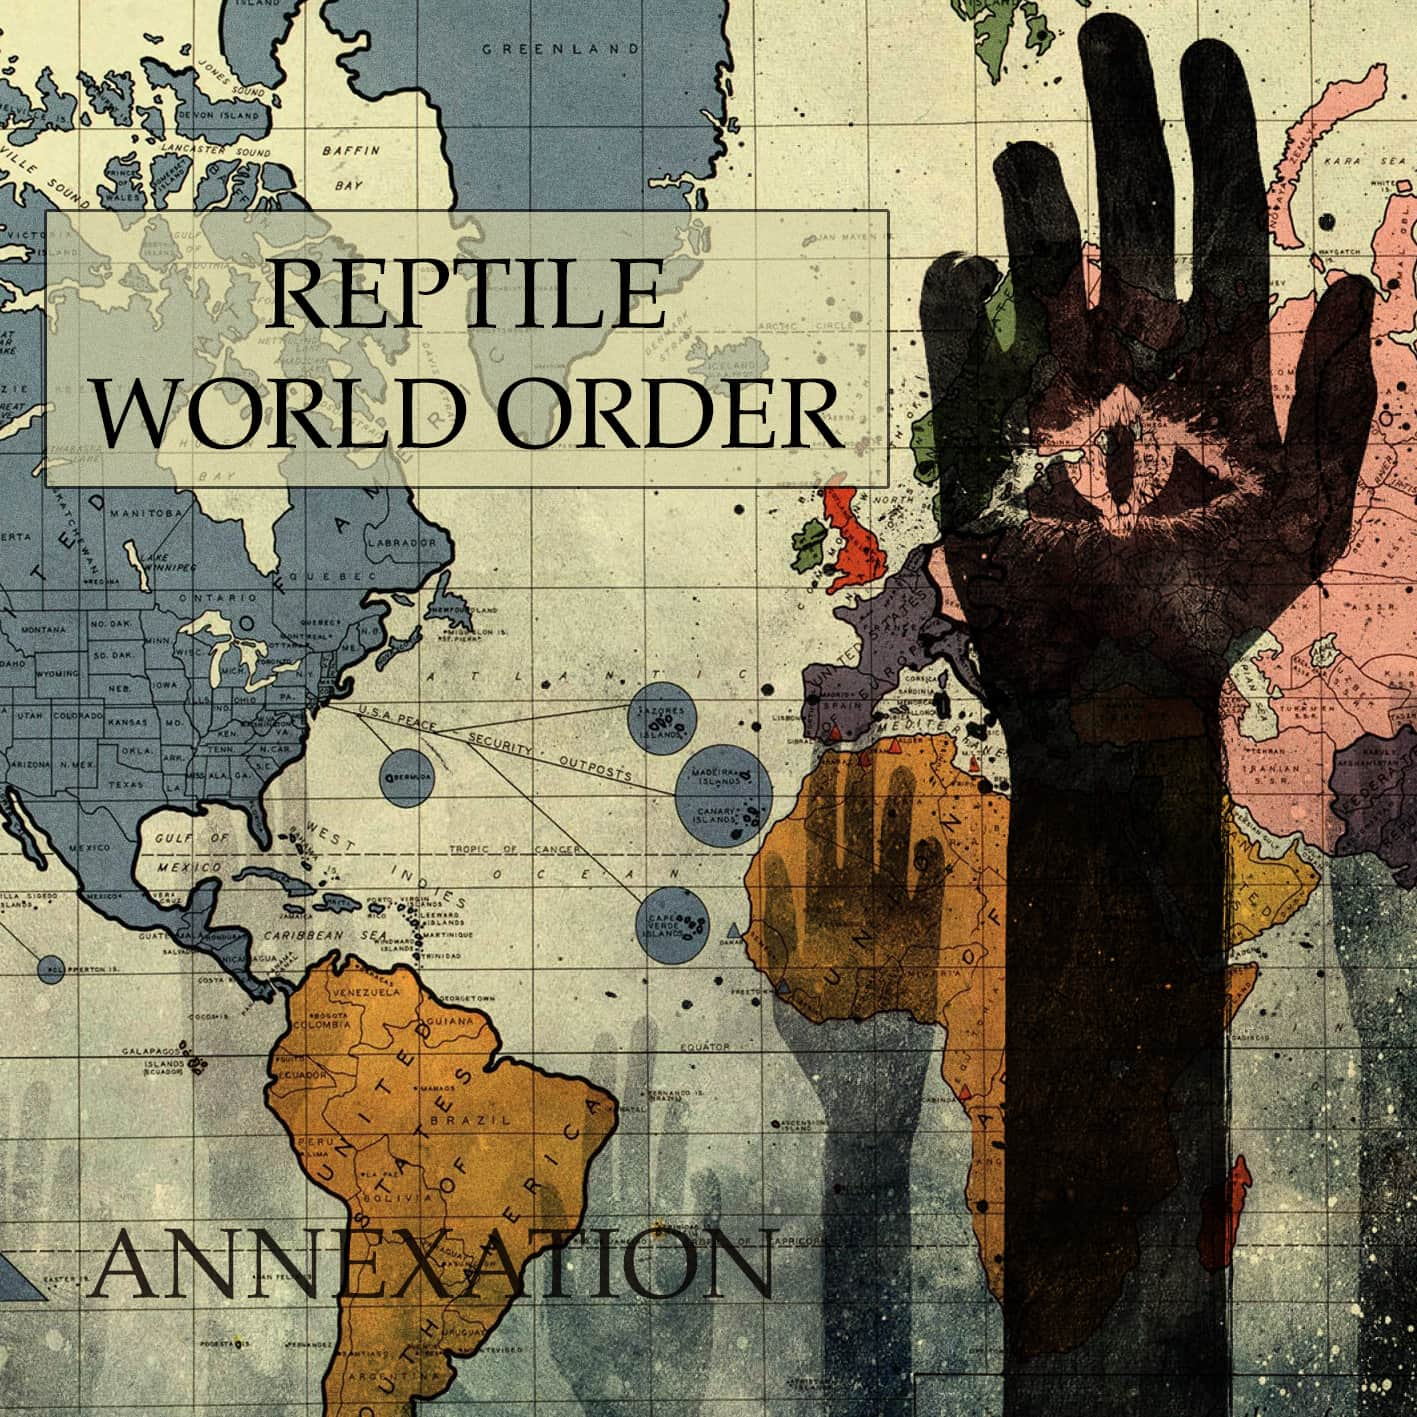 Reptile World Order, Annexation